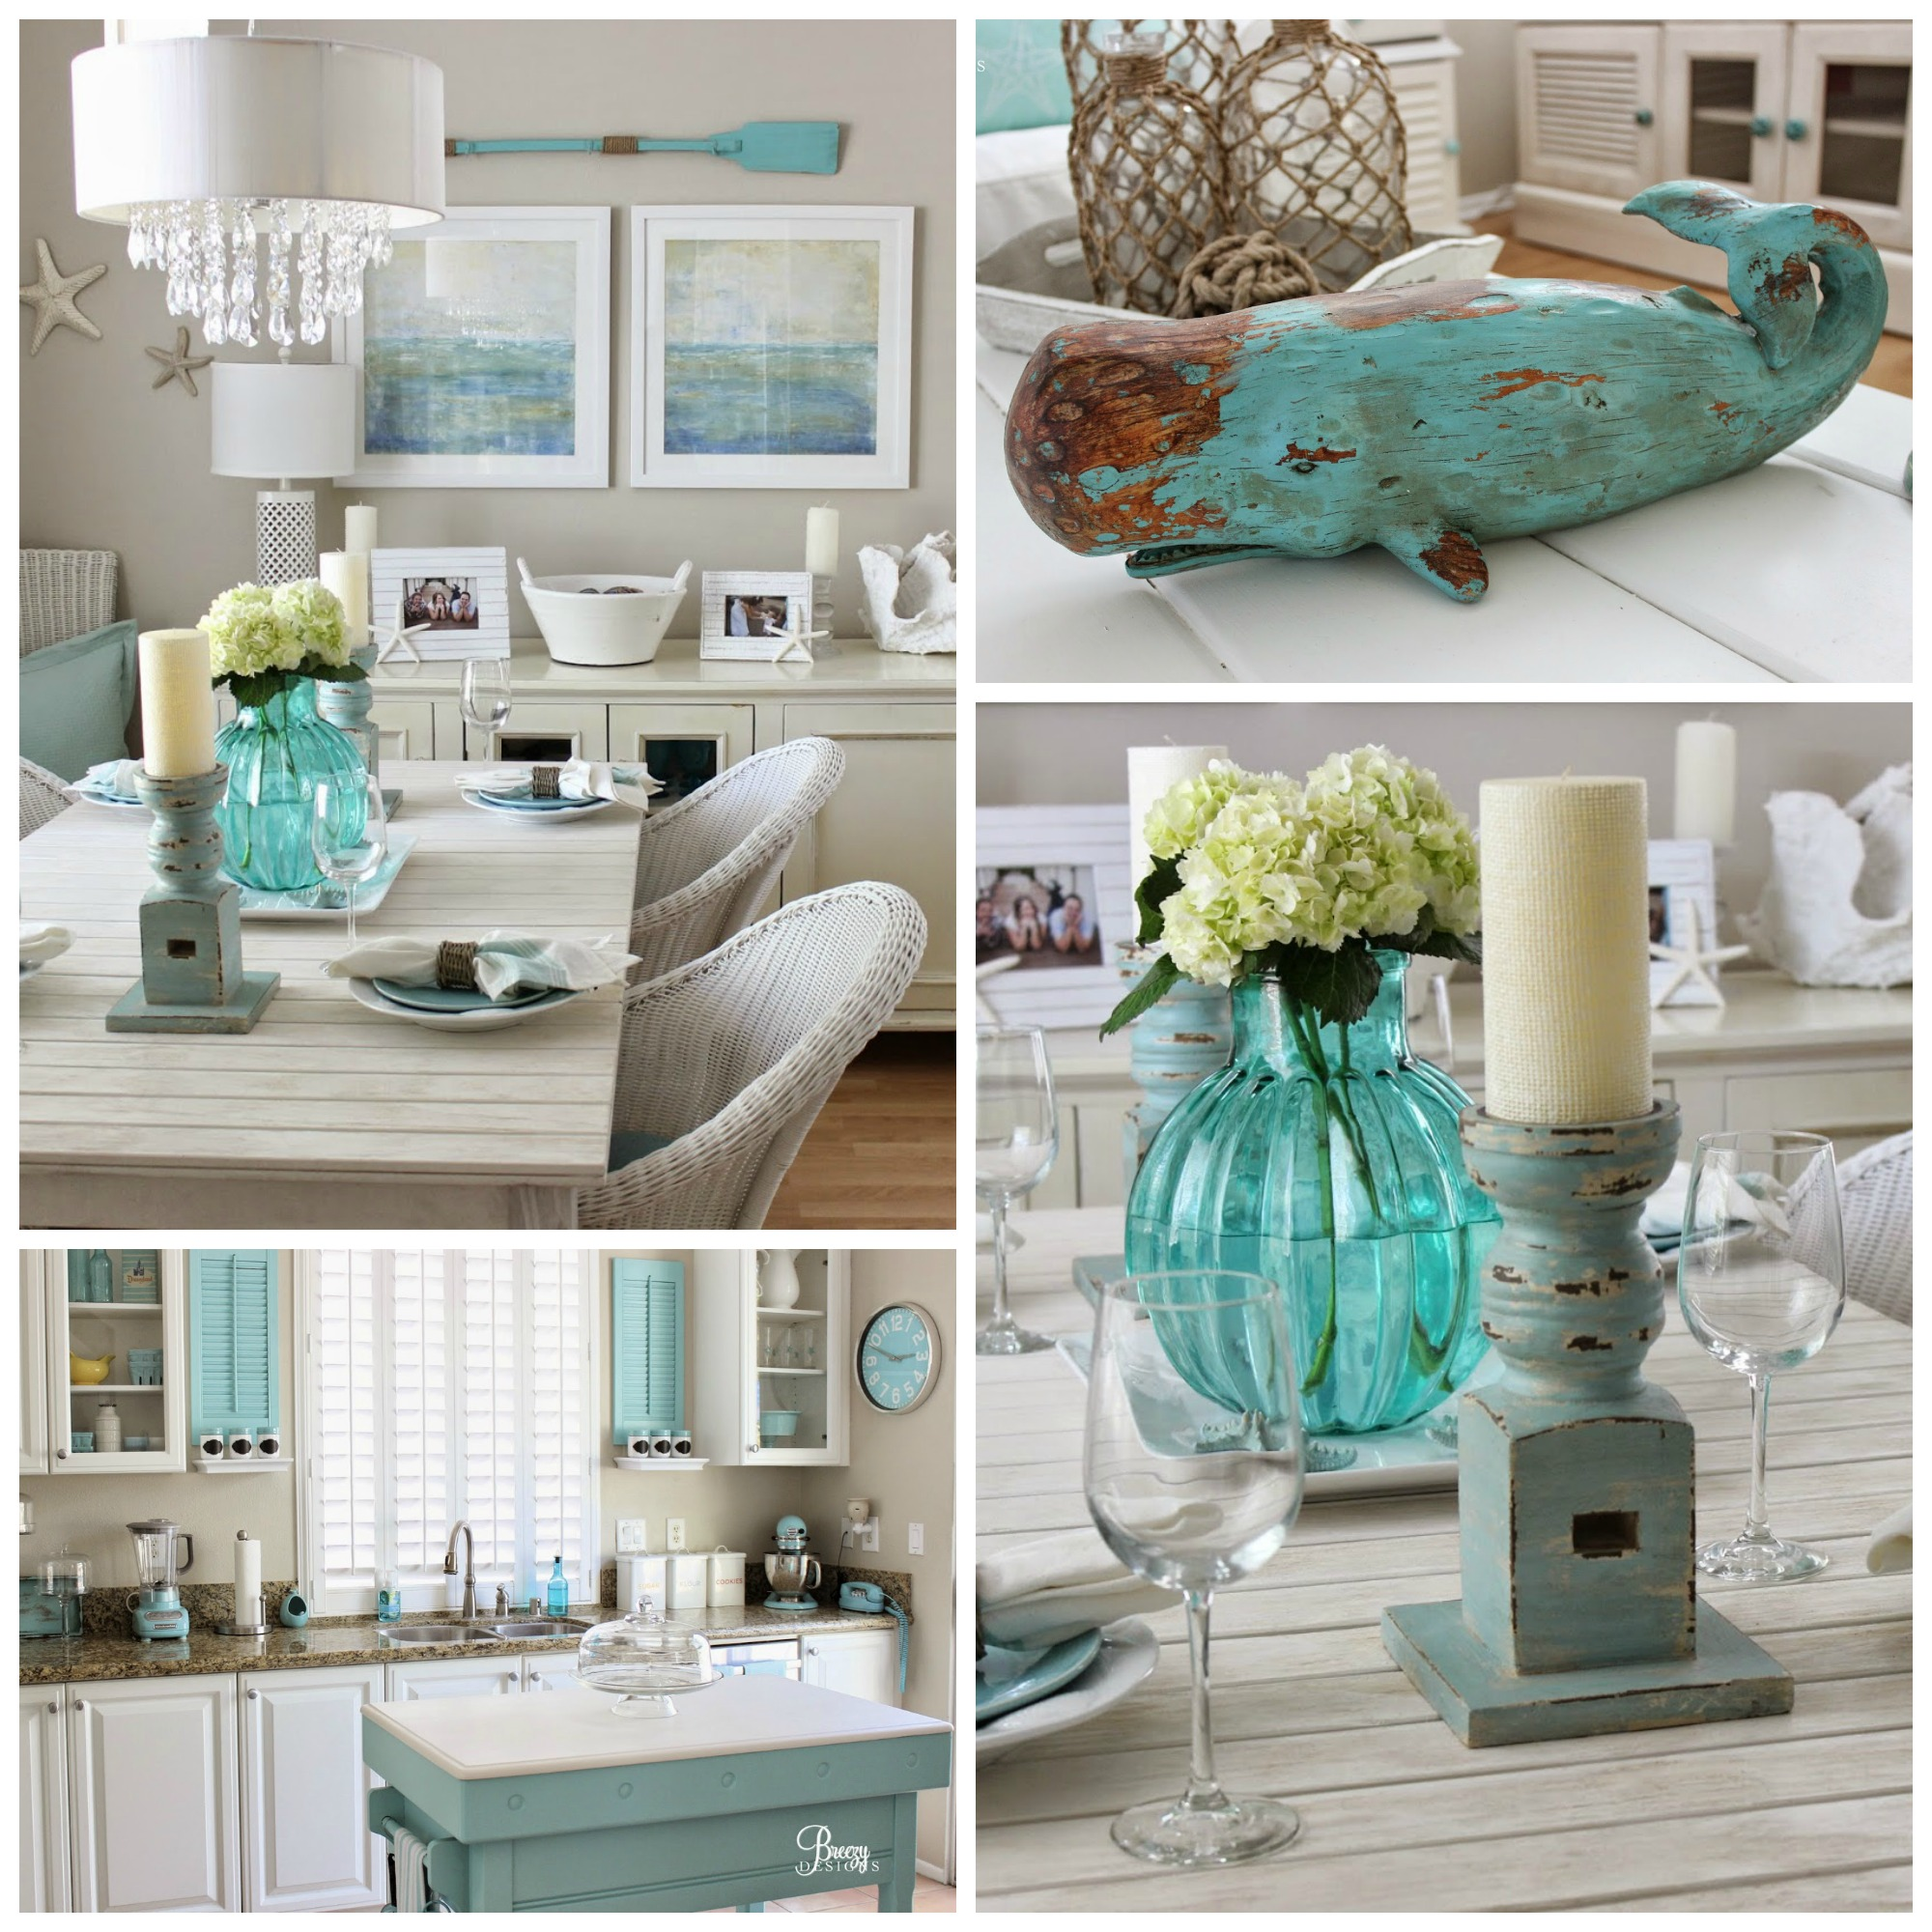 Home Decoration: Beach Chic Coastal Cottage Home Tour With Breezy Design